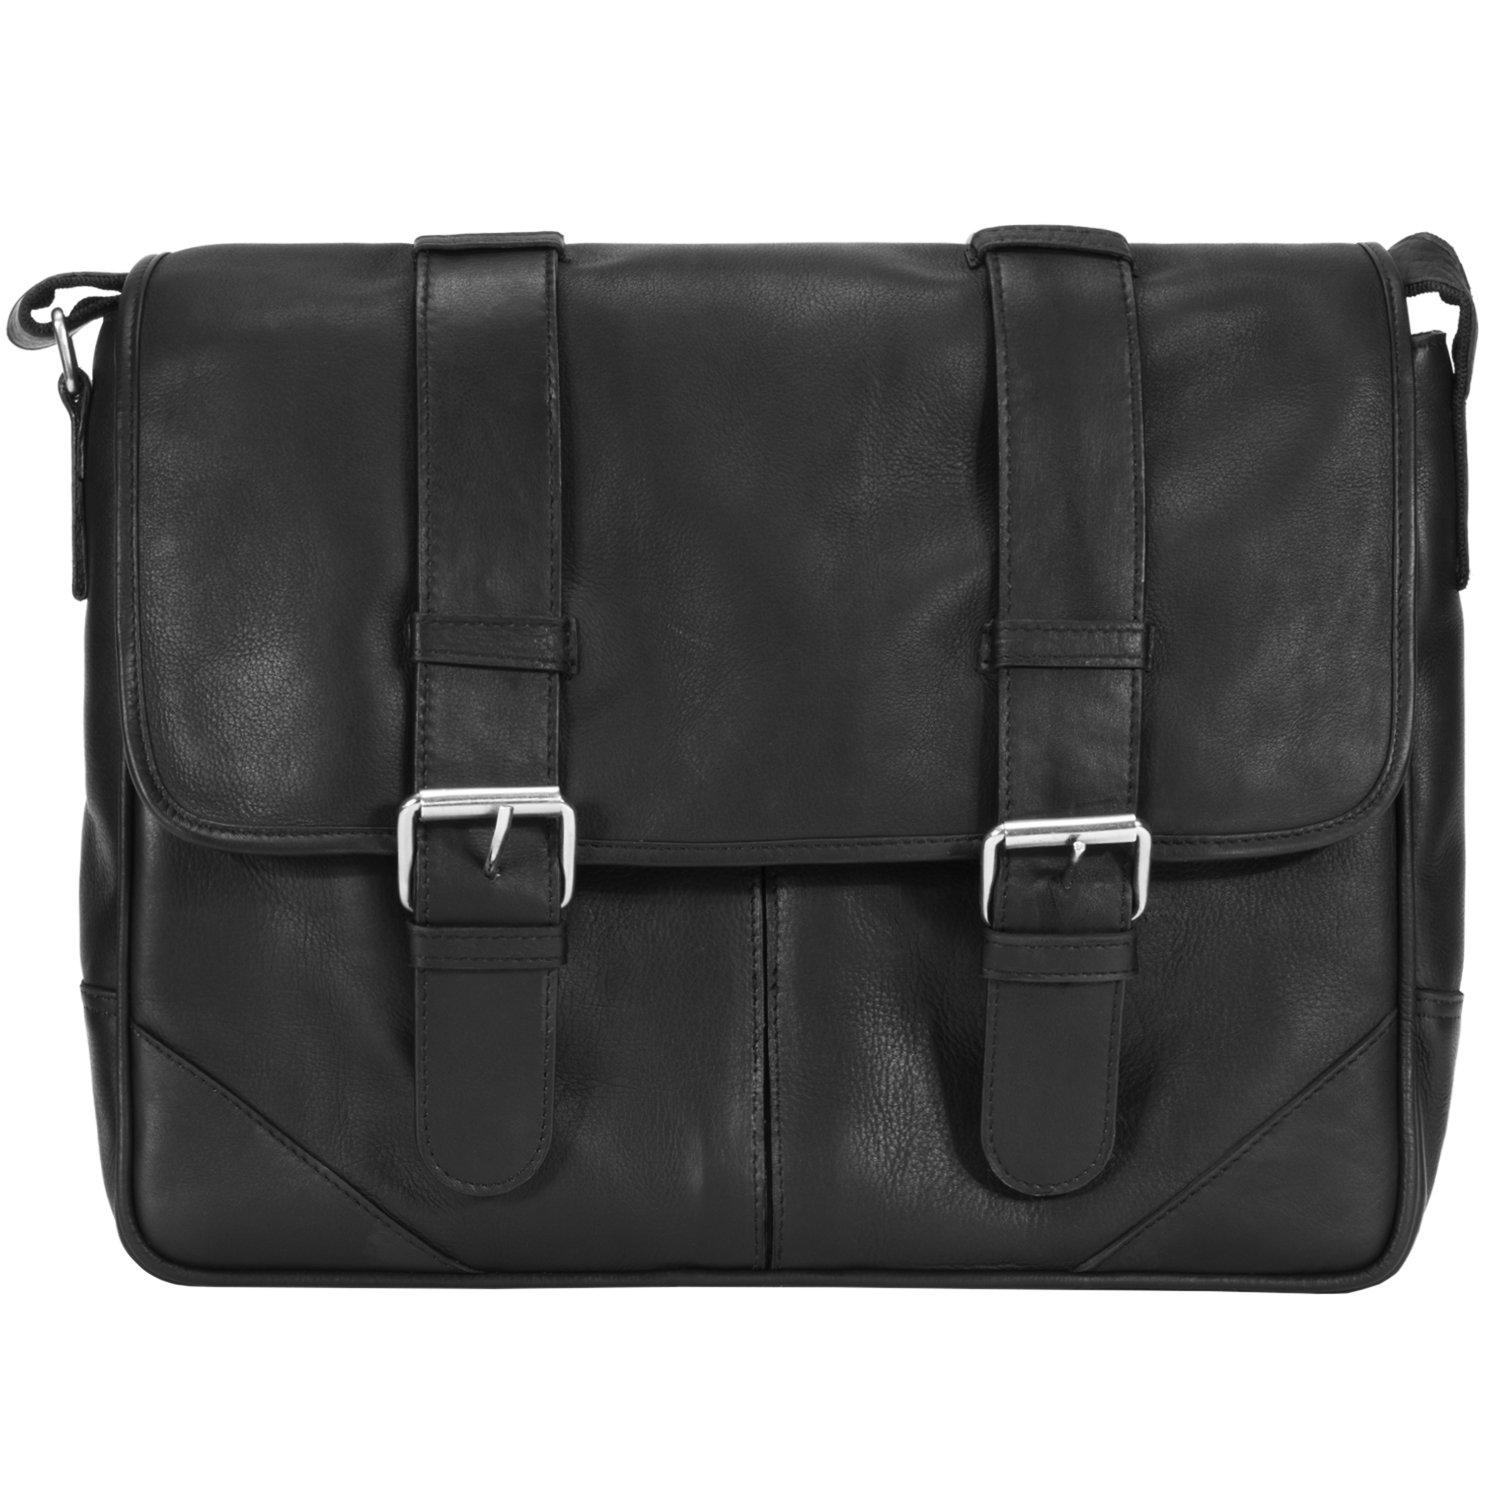 Muiska Leather 15'' Laptop Computer Messenger Bag Shoulder Crossbody Sling Briefcase with Removable PC Sleeve, Black by Muiska